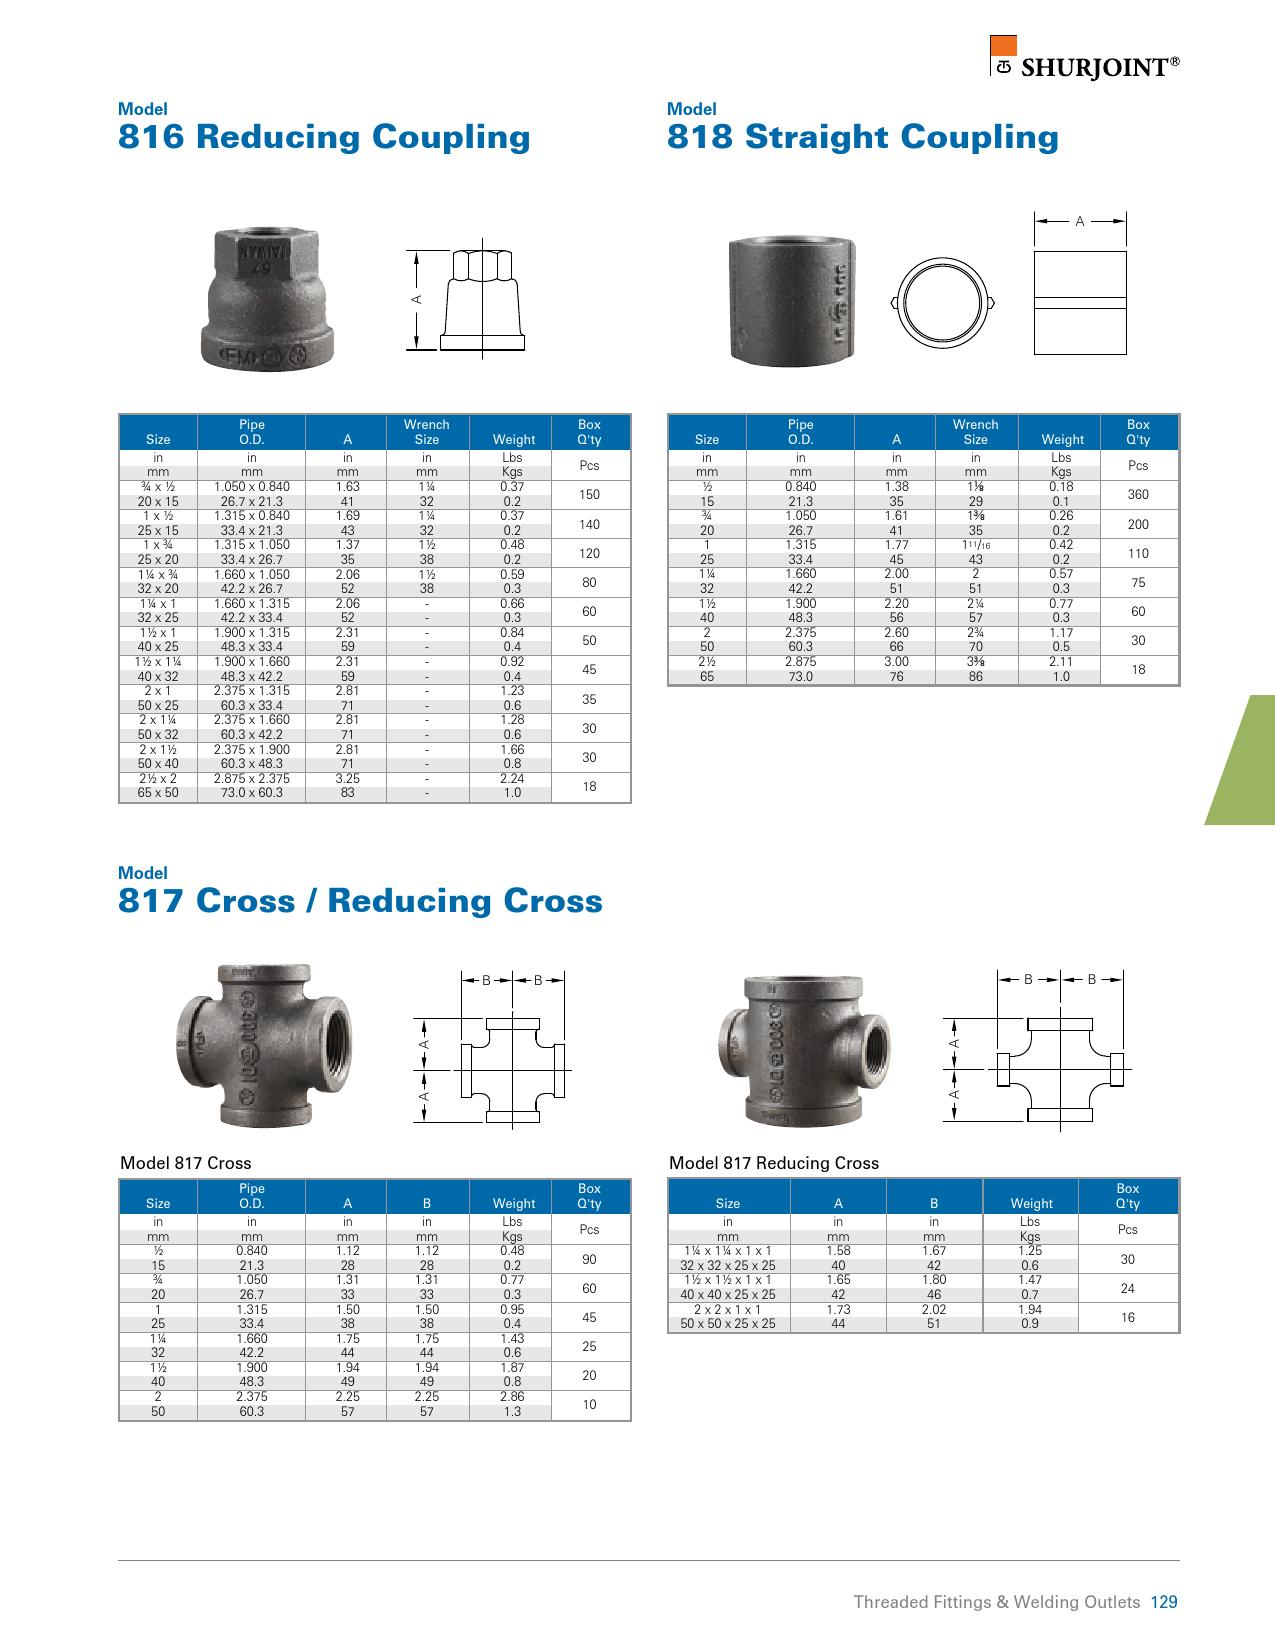 Threaded Fittings & Welding Outlets, Threaded Fittings